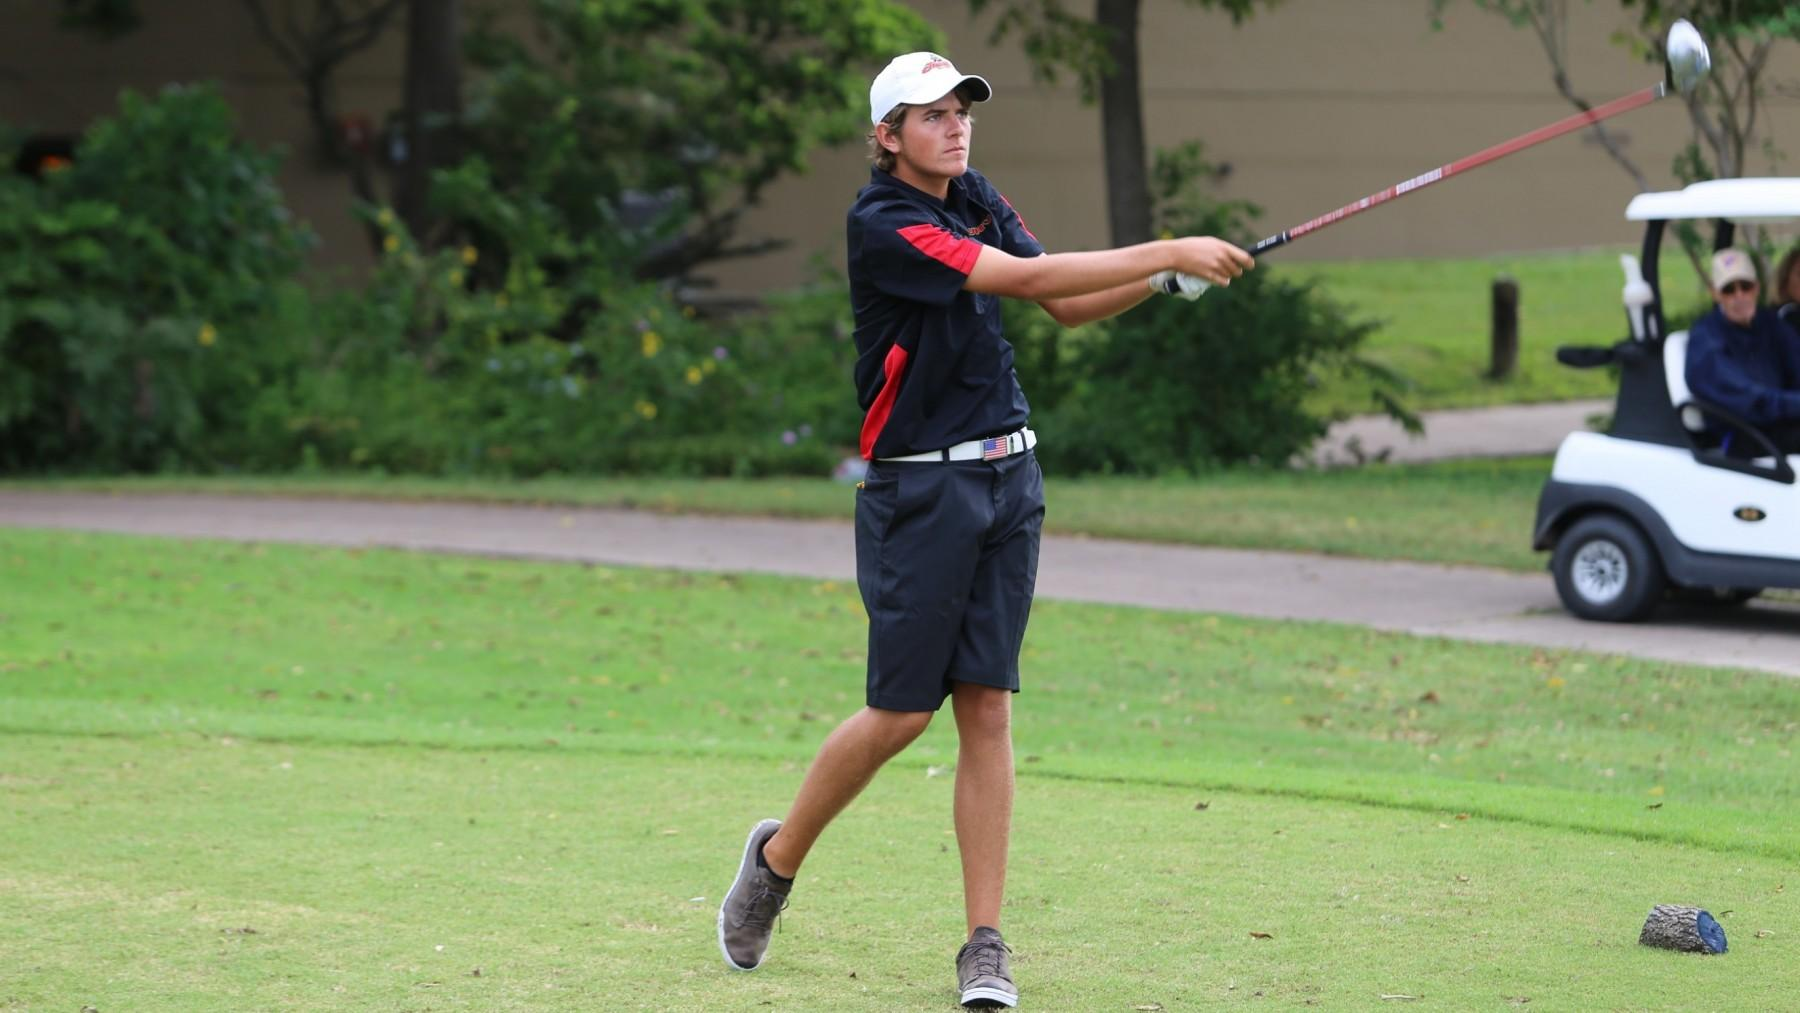 Louisiana golf event cancelled for UHV men